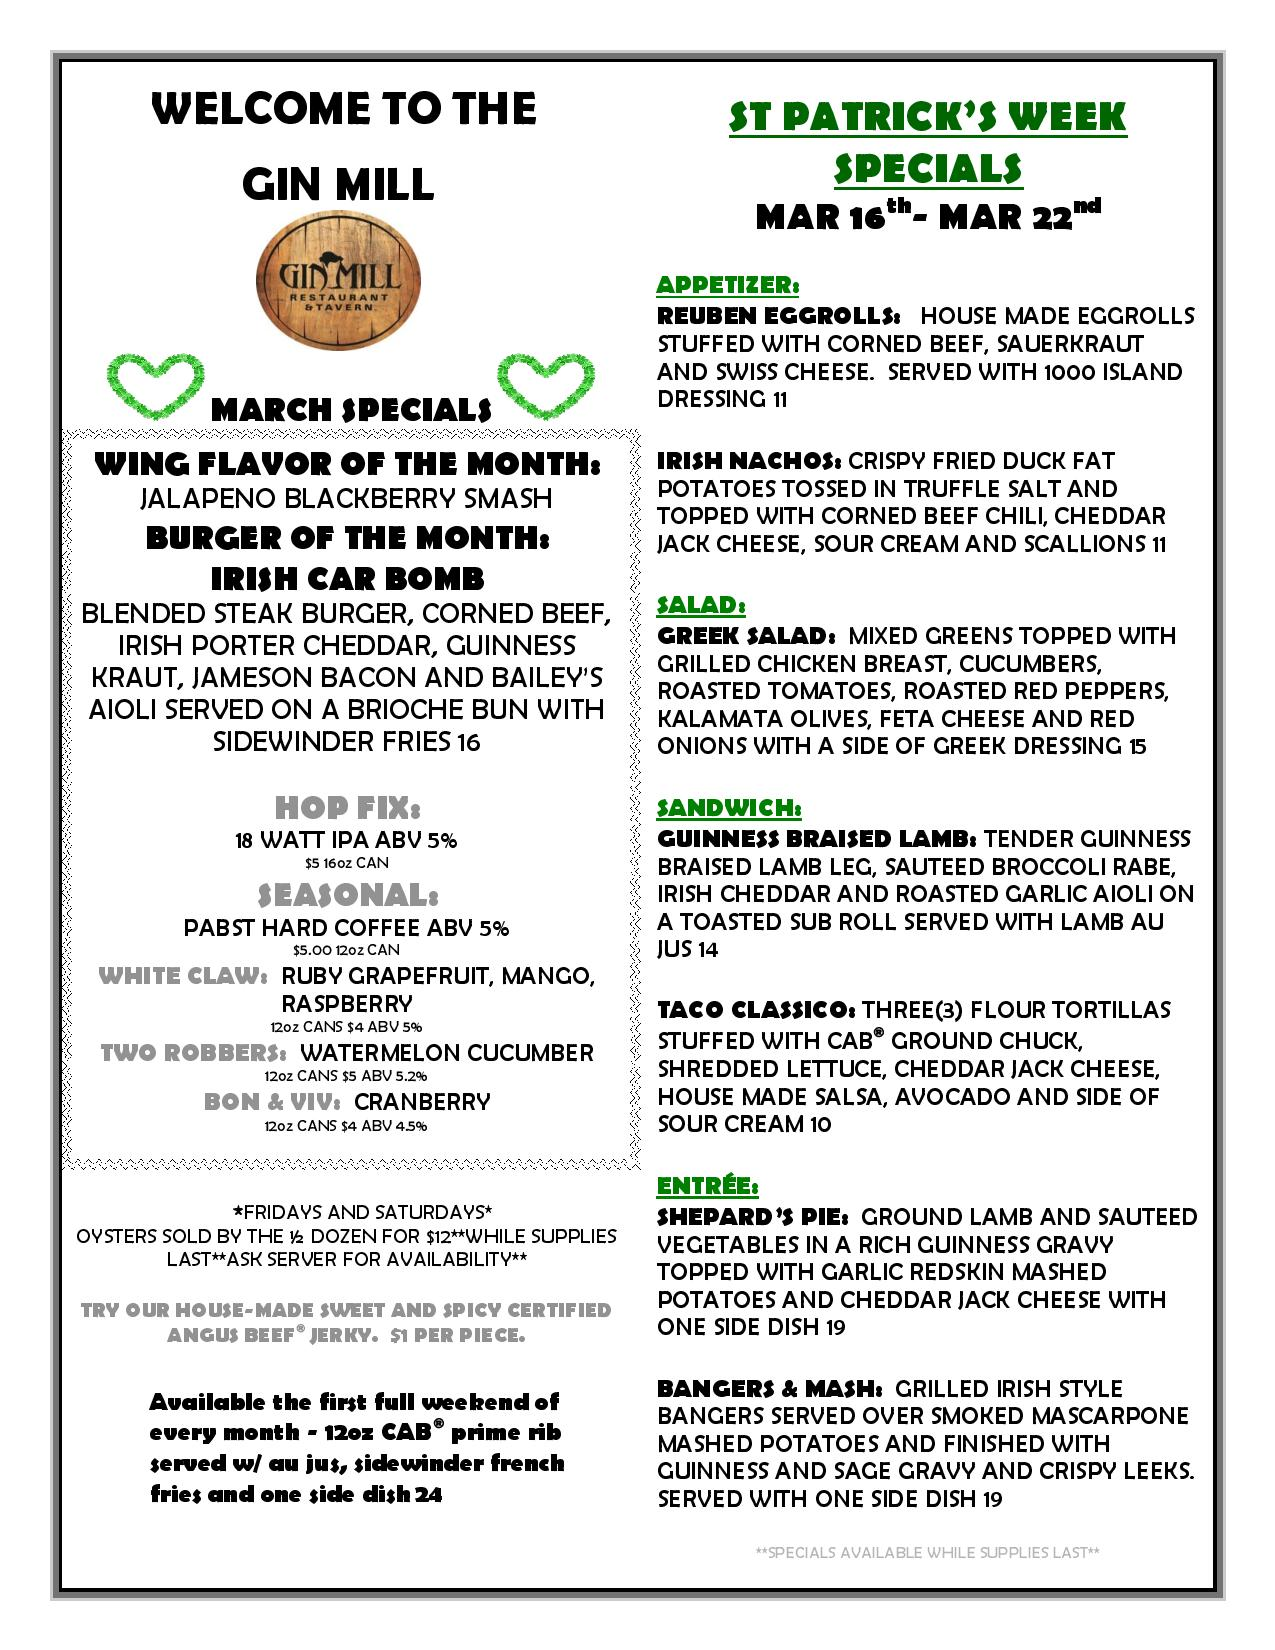 march 16th to march 22nd specials